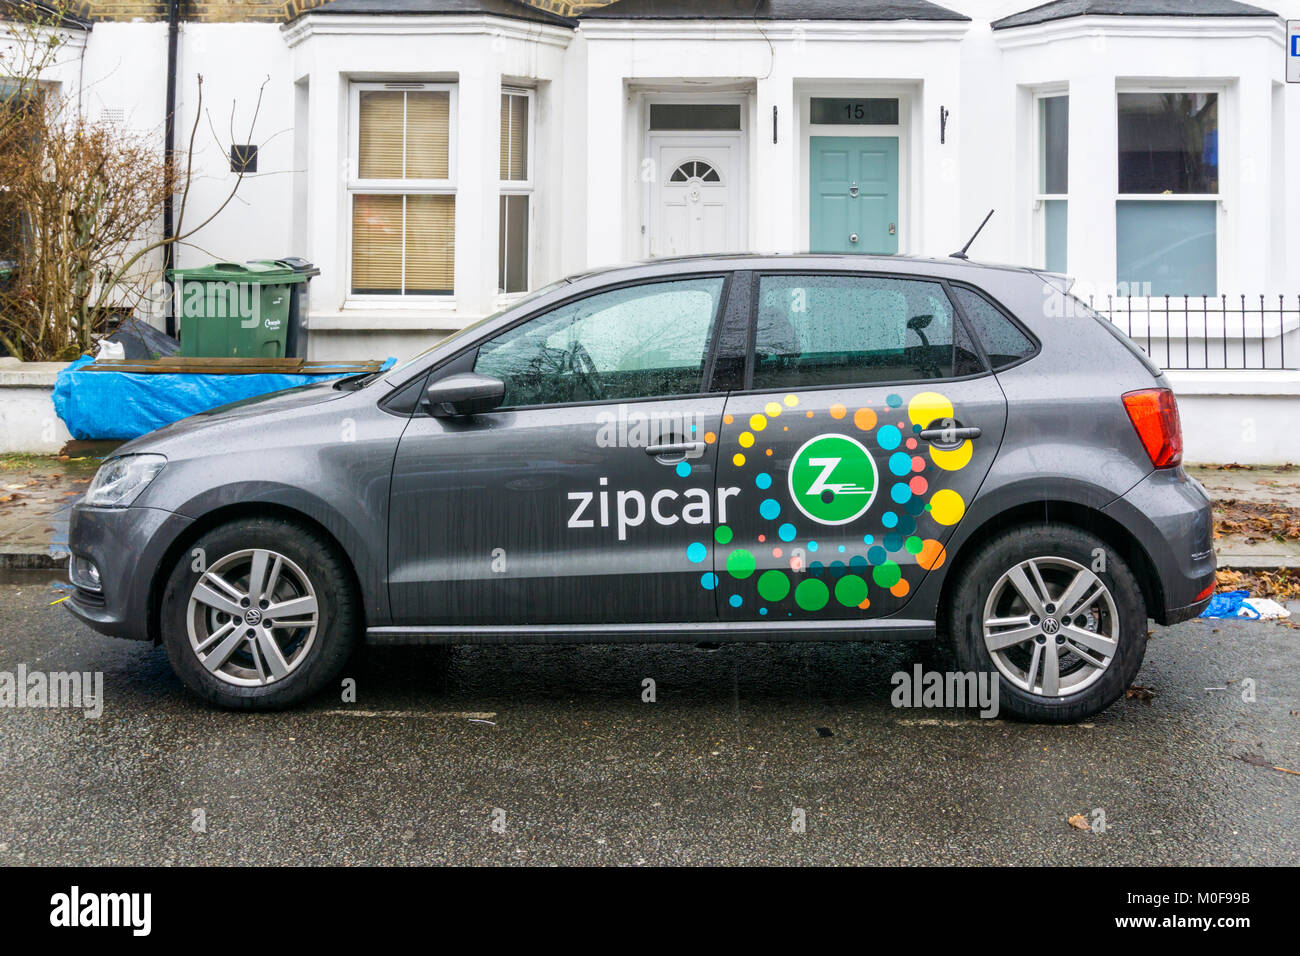 A VW Golf Zipcar in the rain in south London. - Stock Image